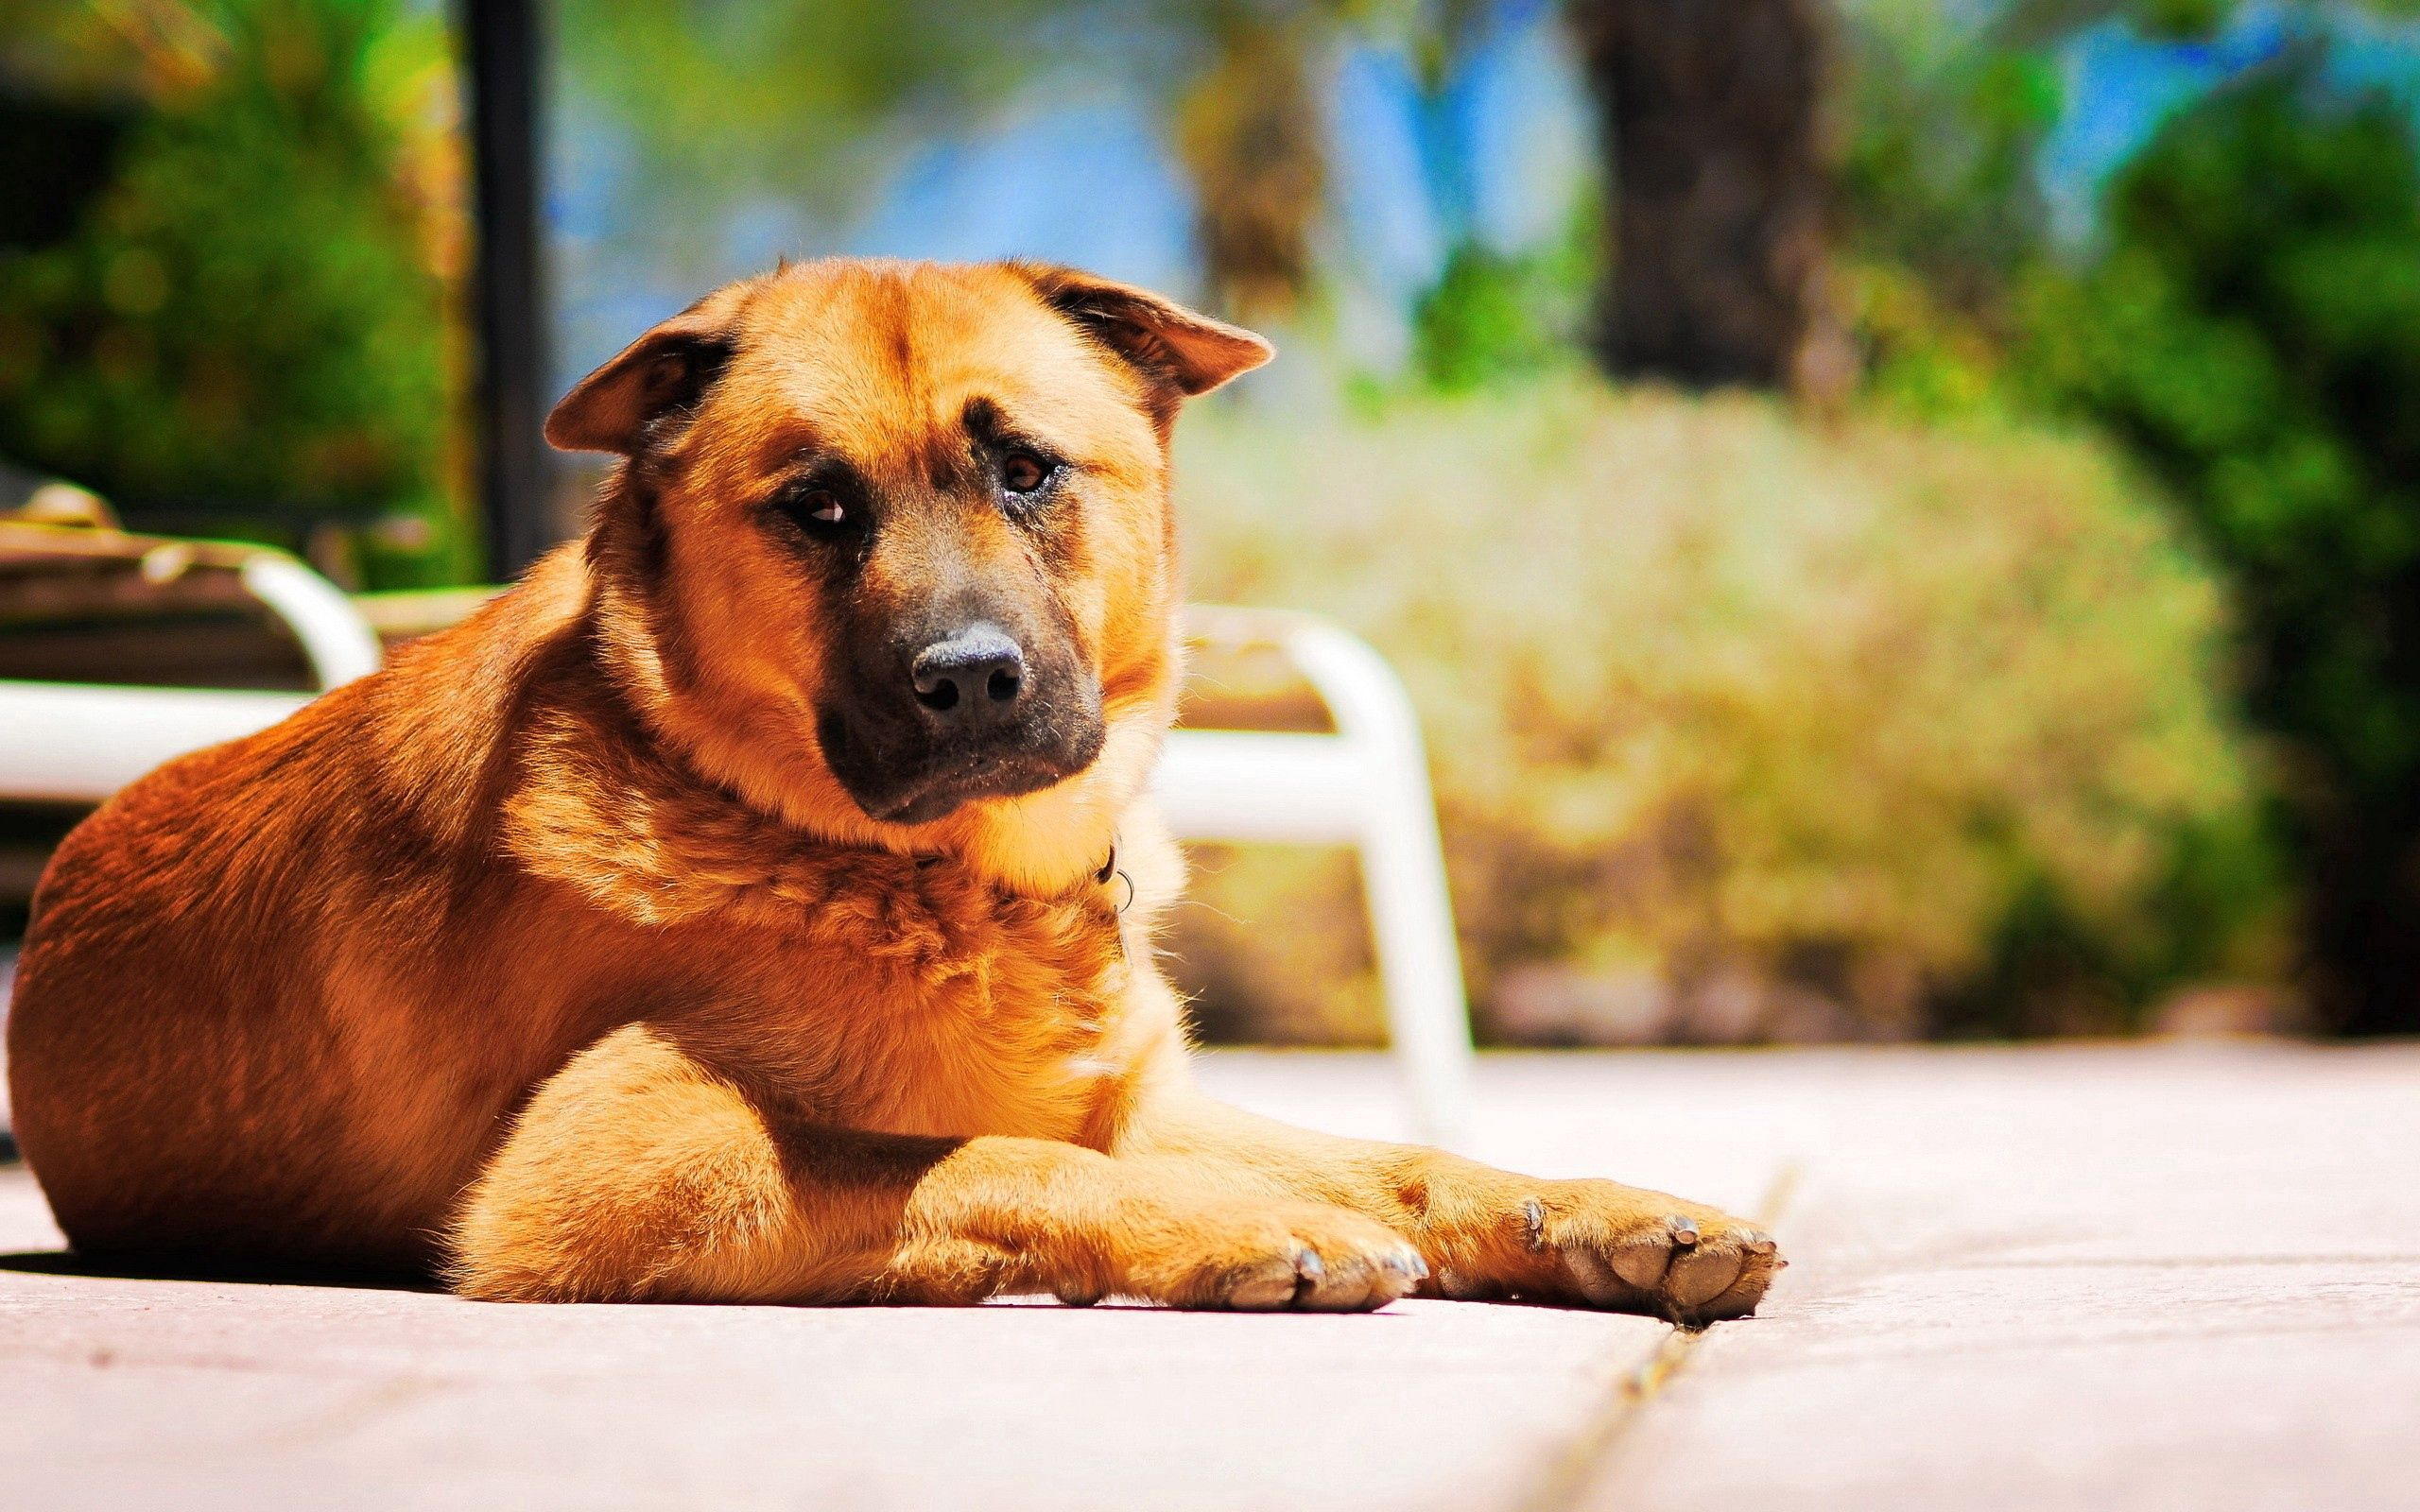 67520 download wallpaper Animals, Dog, To Lie Down, Lie, Sadness, Sorrow, Road screensavers and pictures for free